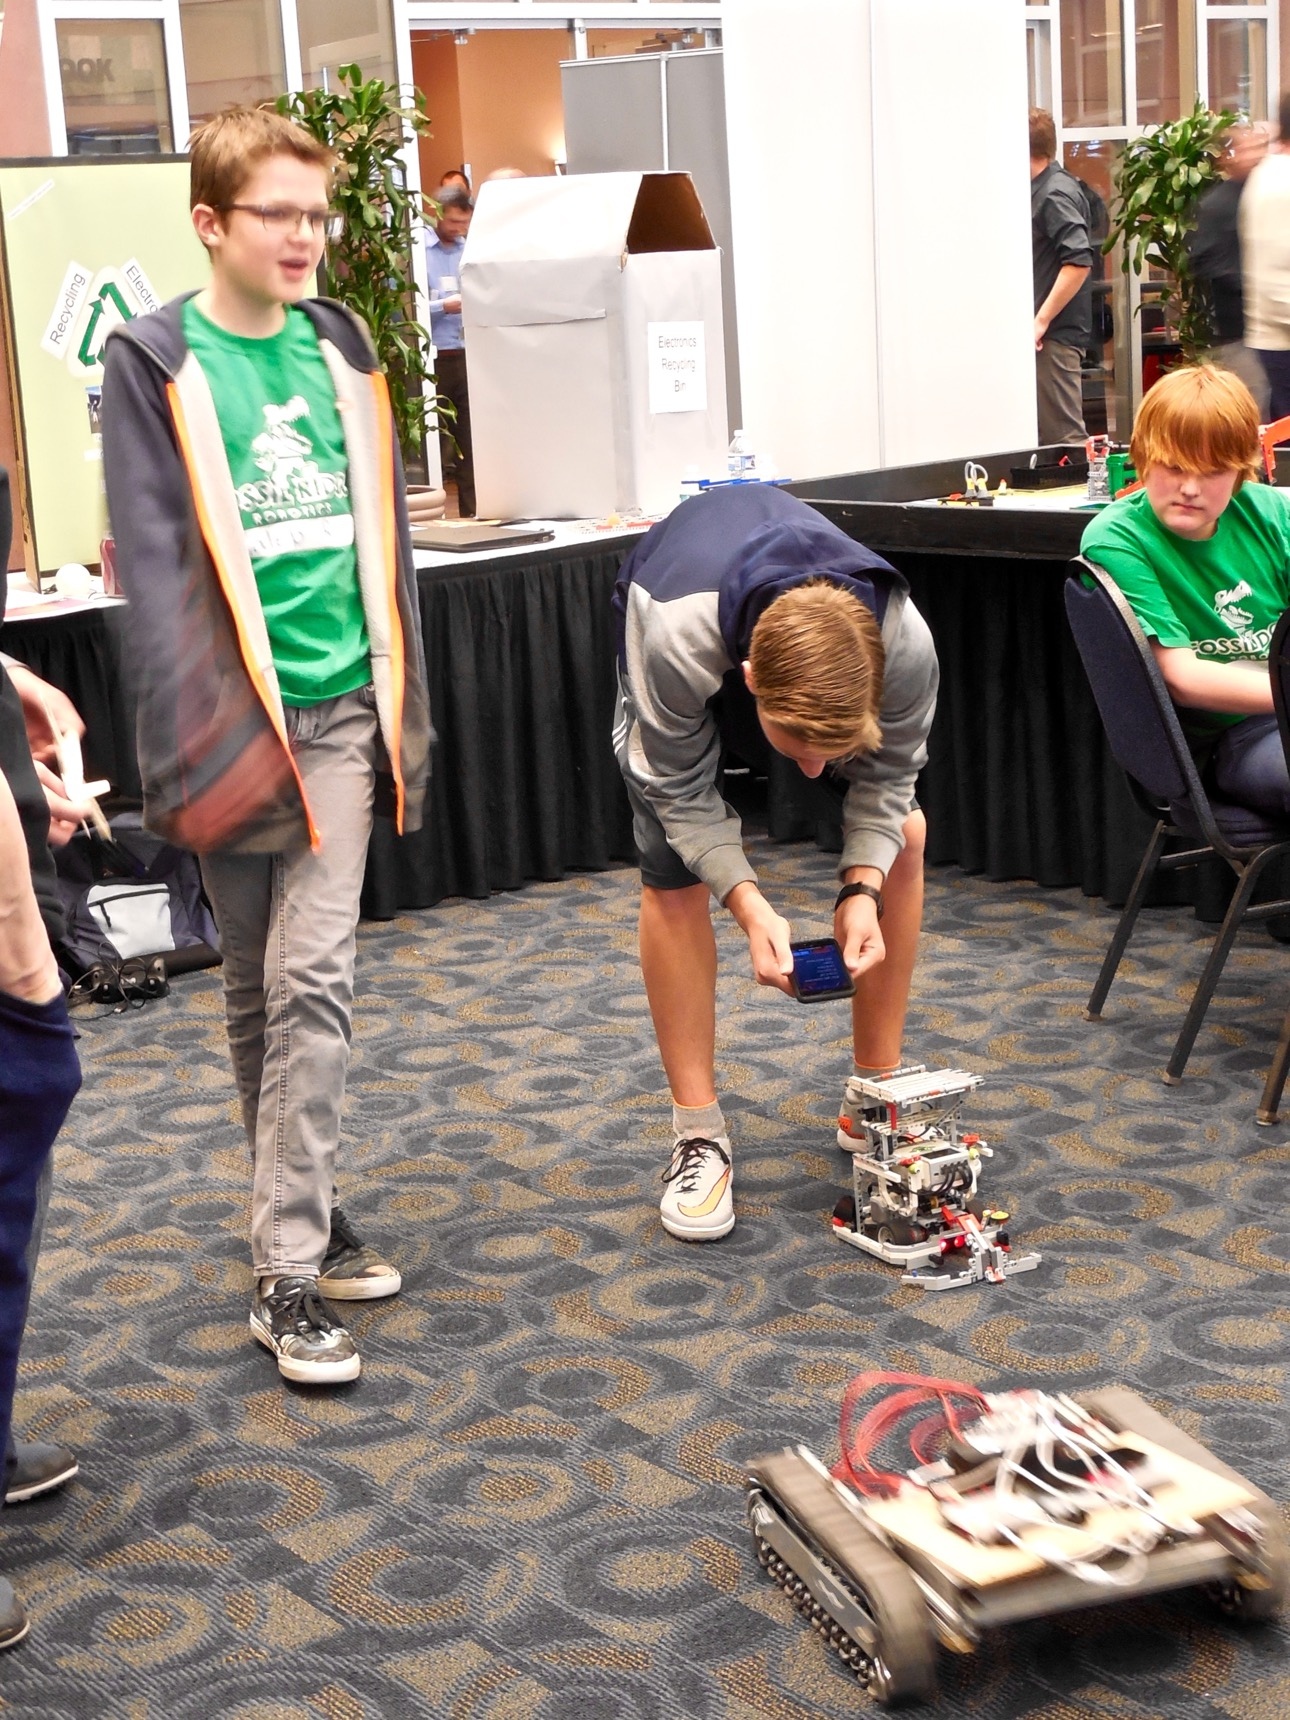 """4-H members control their robots on display at the """"What's Up Down South Economic Summit,"""" Dixie Center St. George, St. George, Utah, Jan. 14, 2016 